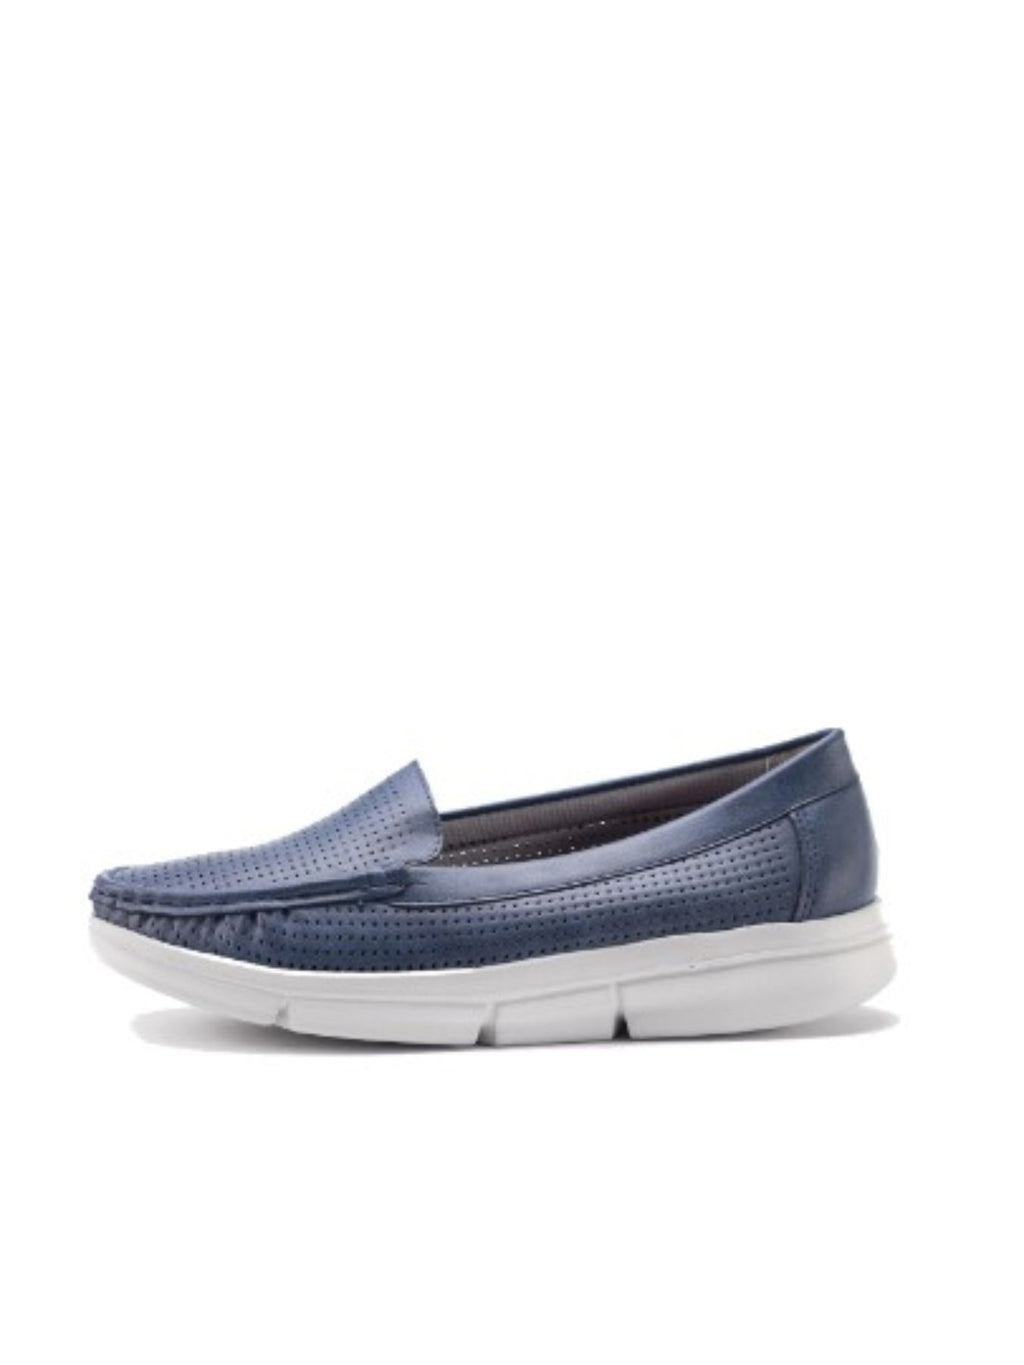 Larrie Blue Clean-Cut Comfortable Casual Flats